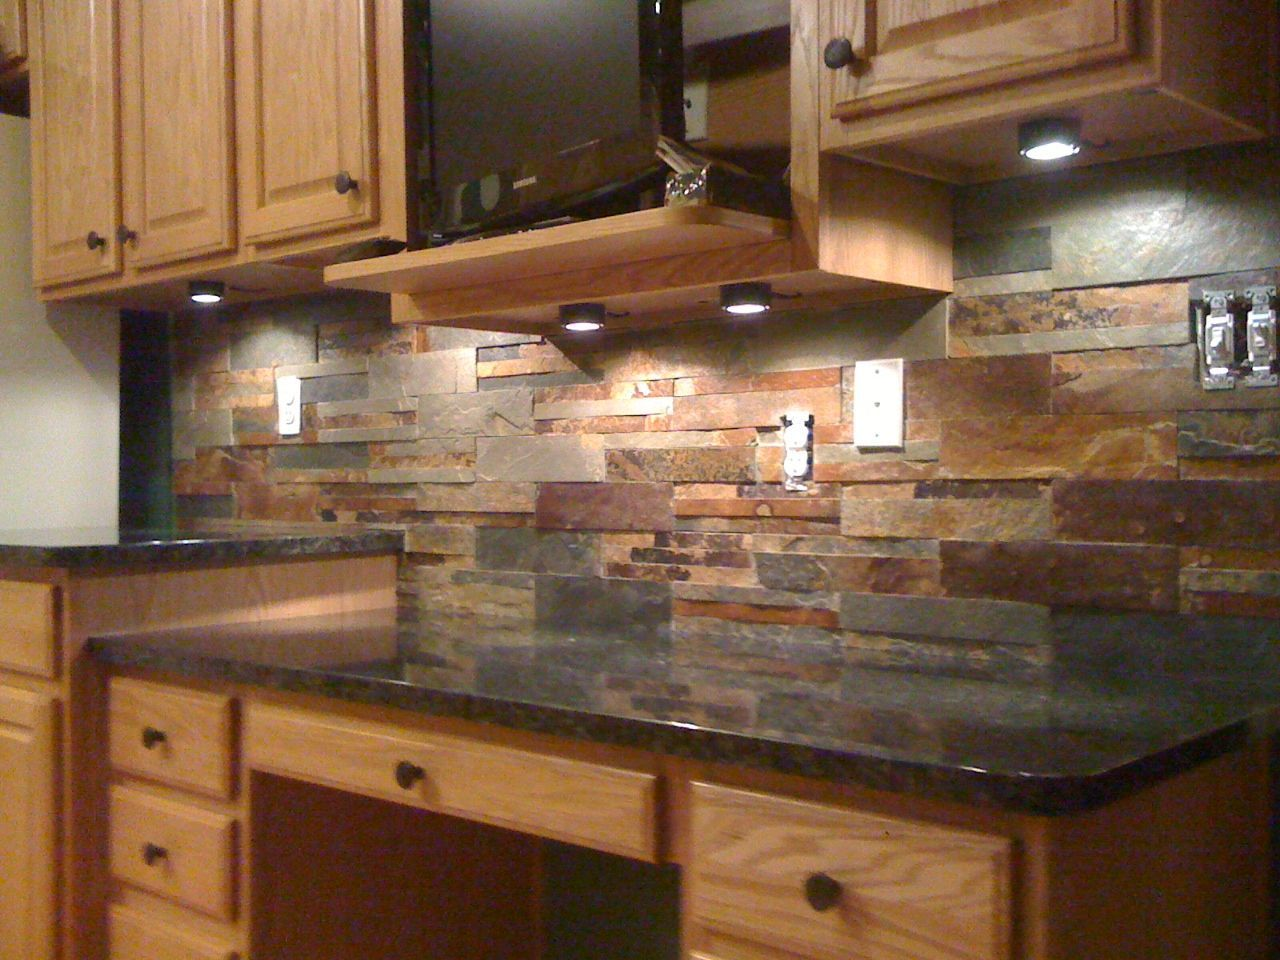 Black Granite Countertops With Tile Backsplash ideas for backsplash with black granite countertops  google